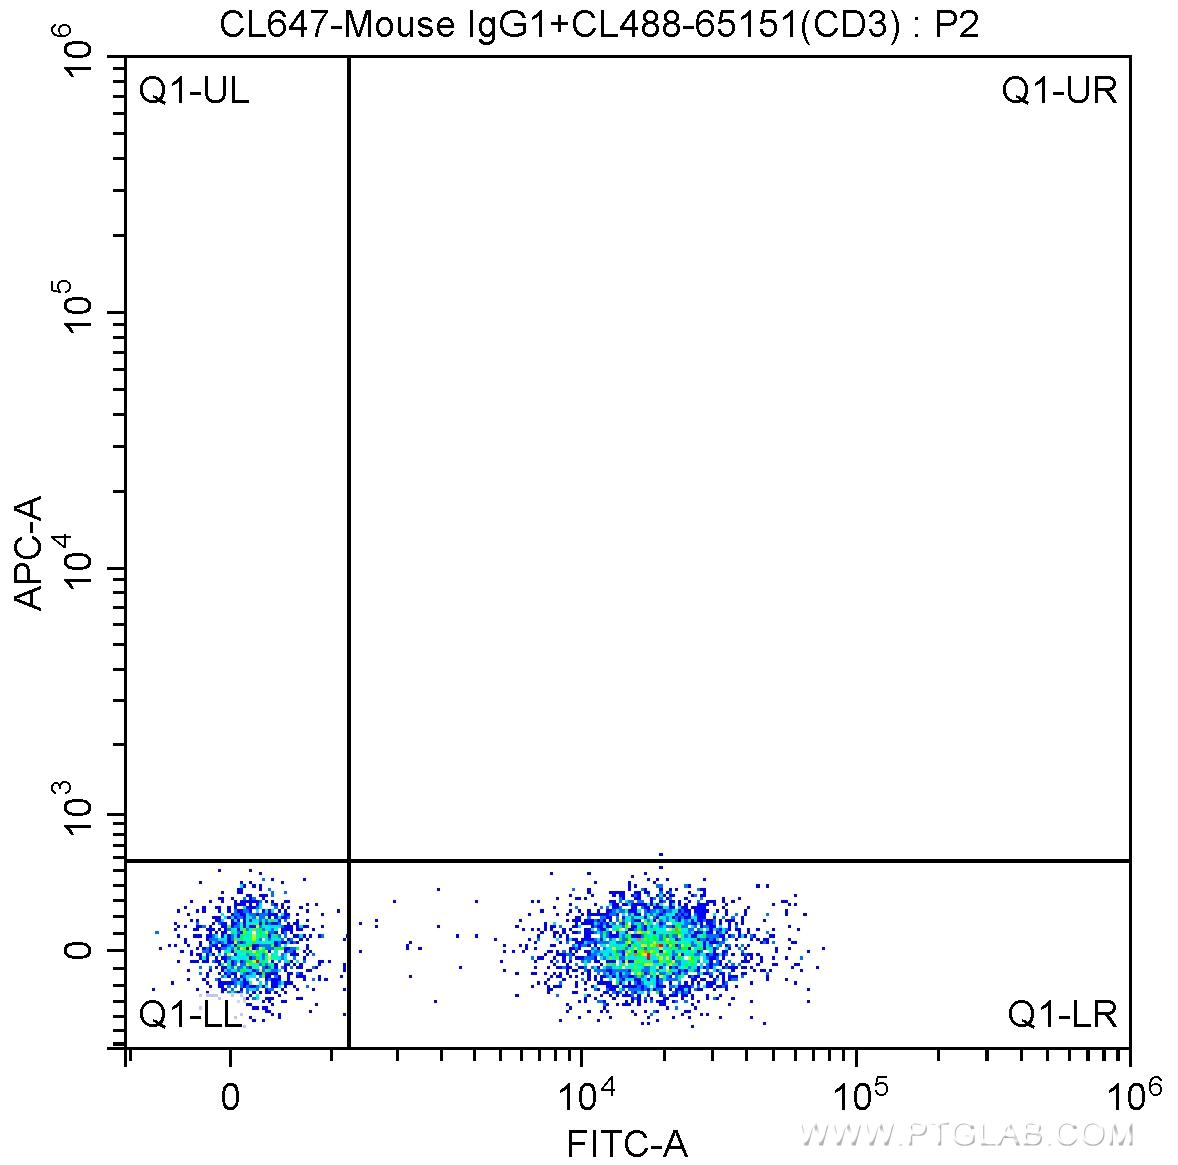 1X10^6 human peripheral blood lymphocytes were surface stained with 5 ul CoraLite®488-conjugated Anti-Human CD3 (CL488-65151, Clone: UCHT1) and CoraLite®647-conjugated Mouse IgG1 isotype control. Cells were not fixed.